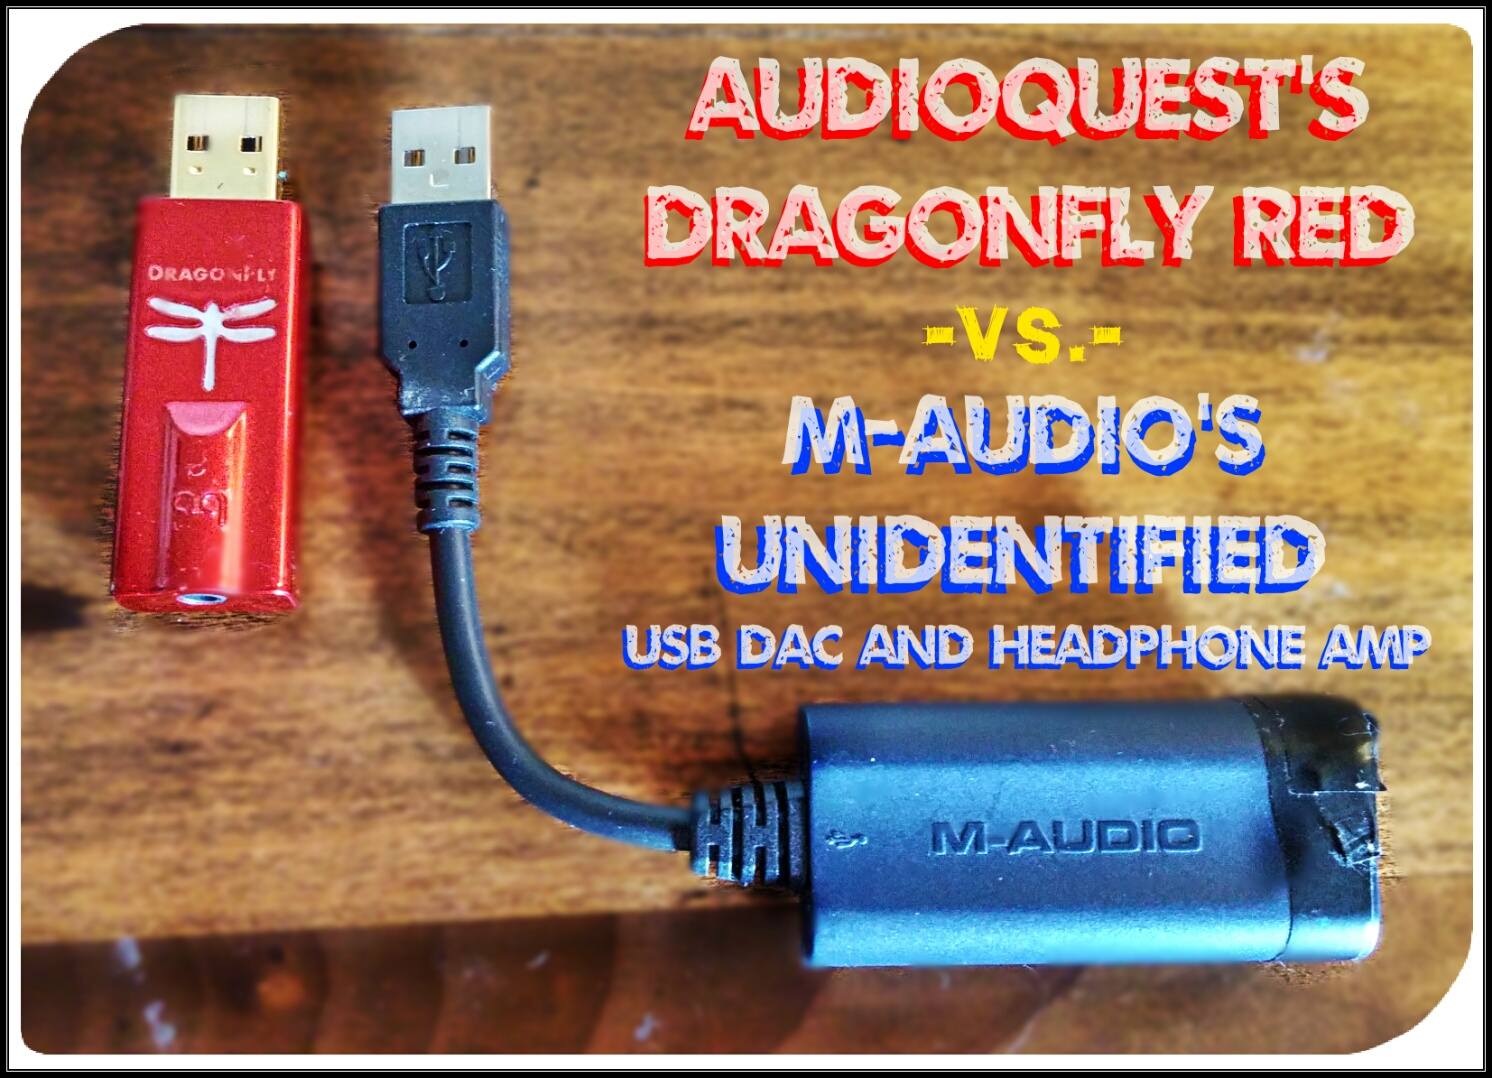 Head to head, dongle to dongle: Audioquest's Dragonfly Red